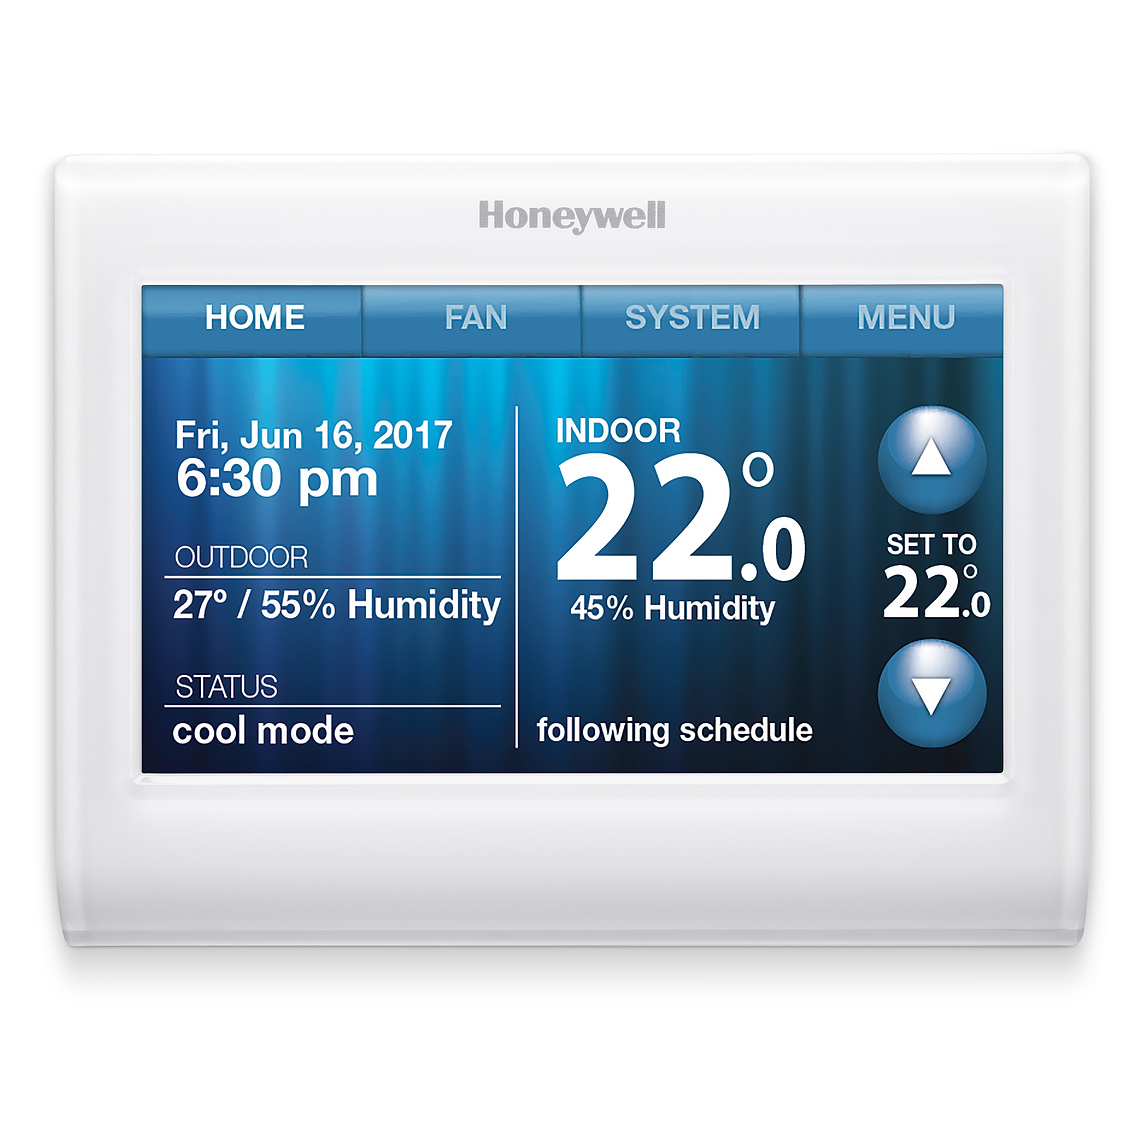 Testing Your Smart Thermostats Shabbos IQ: Part I